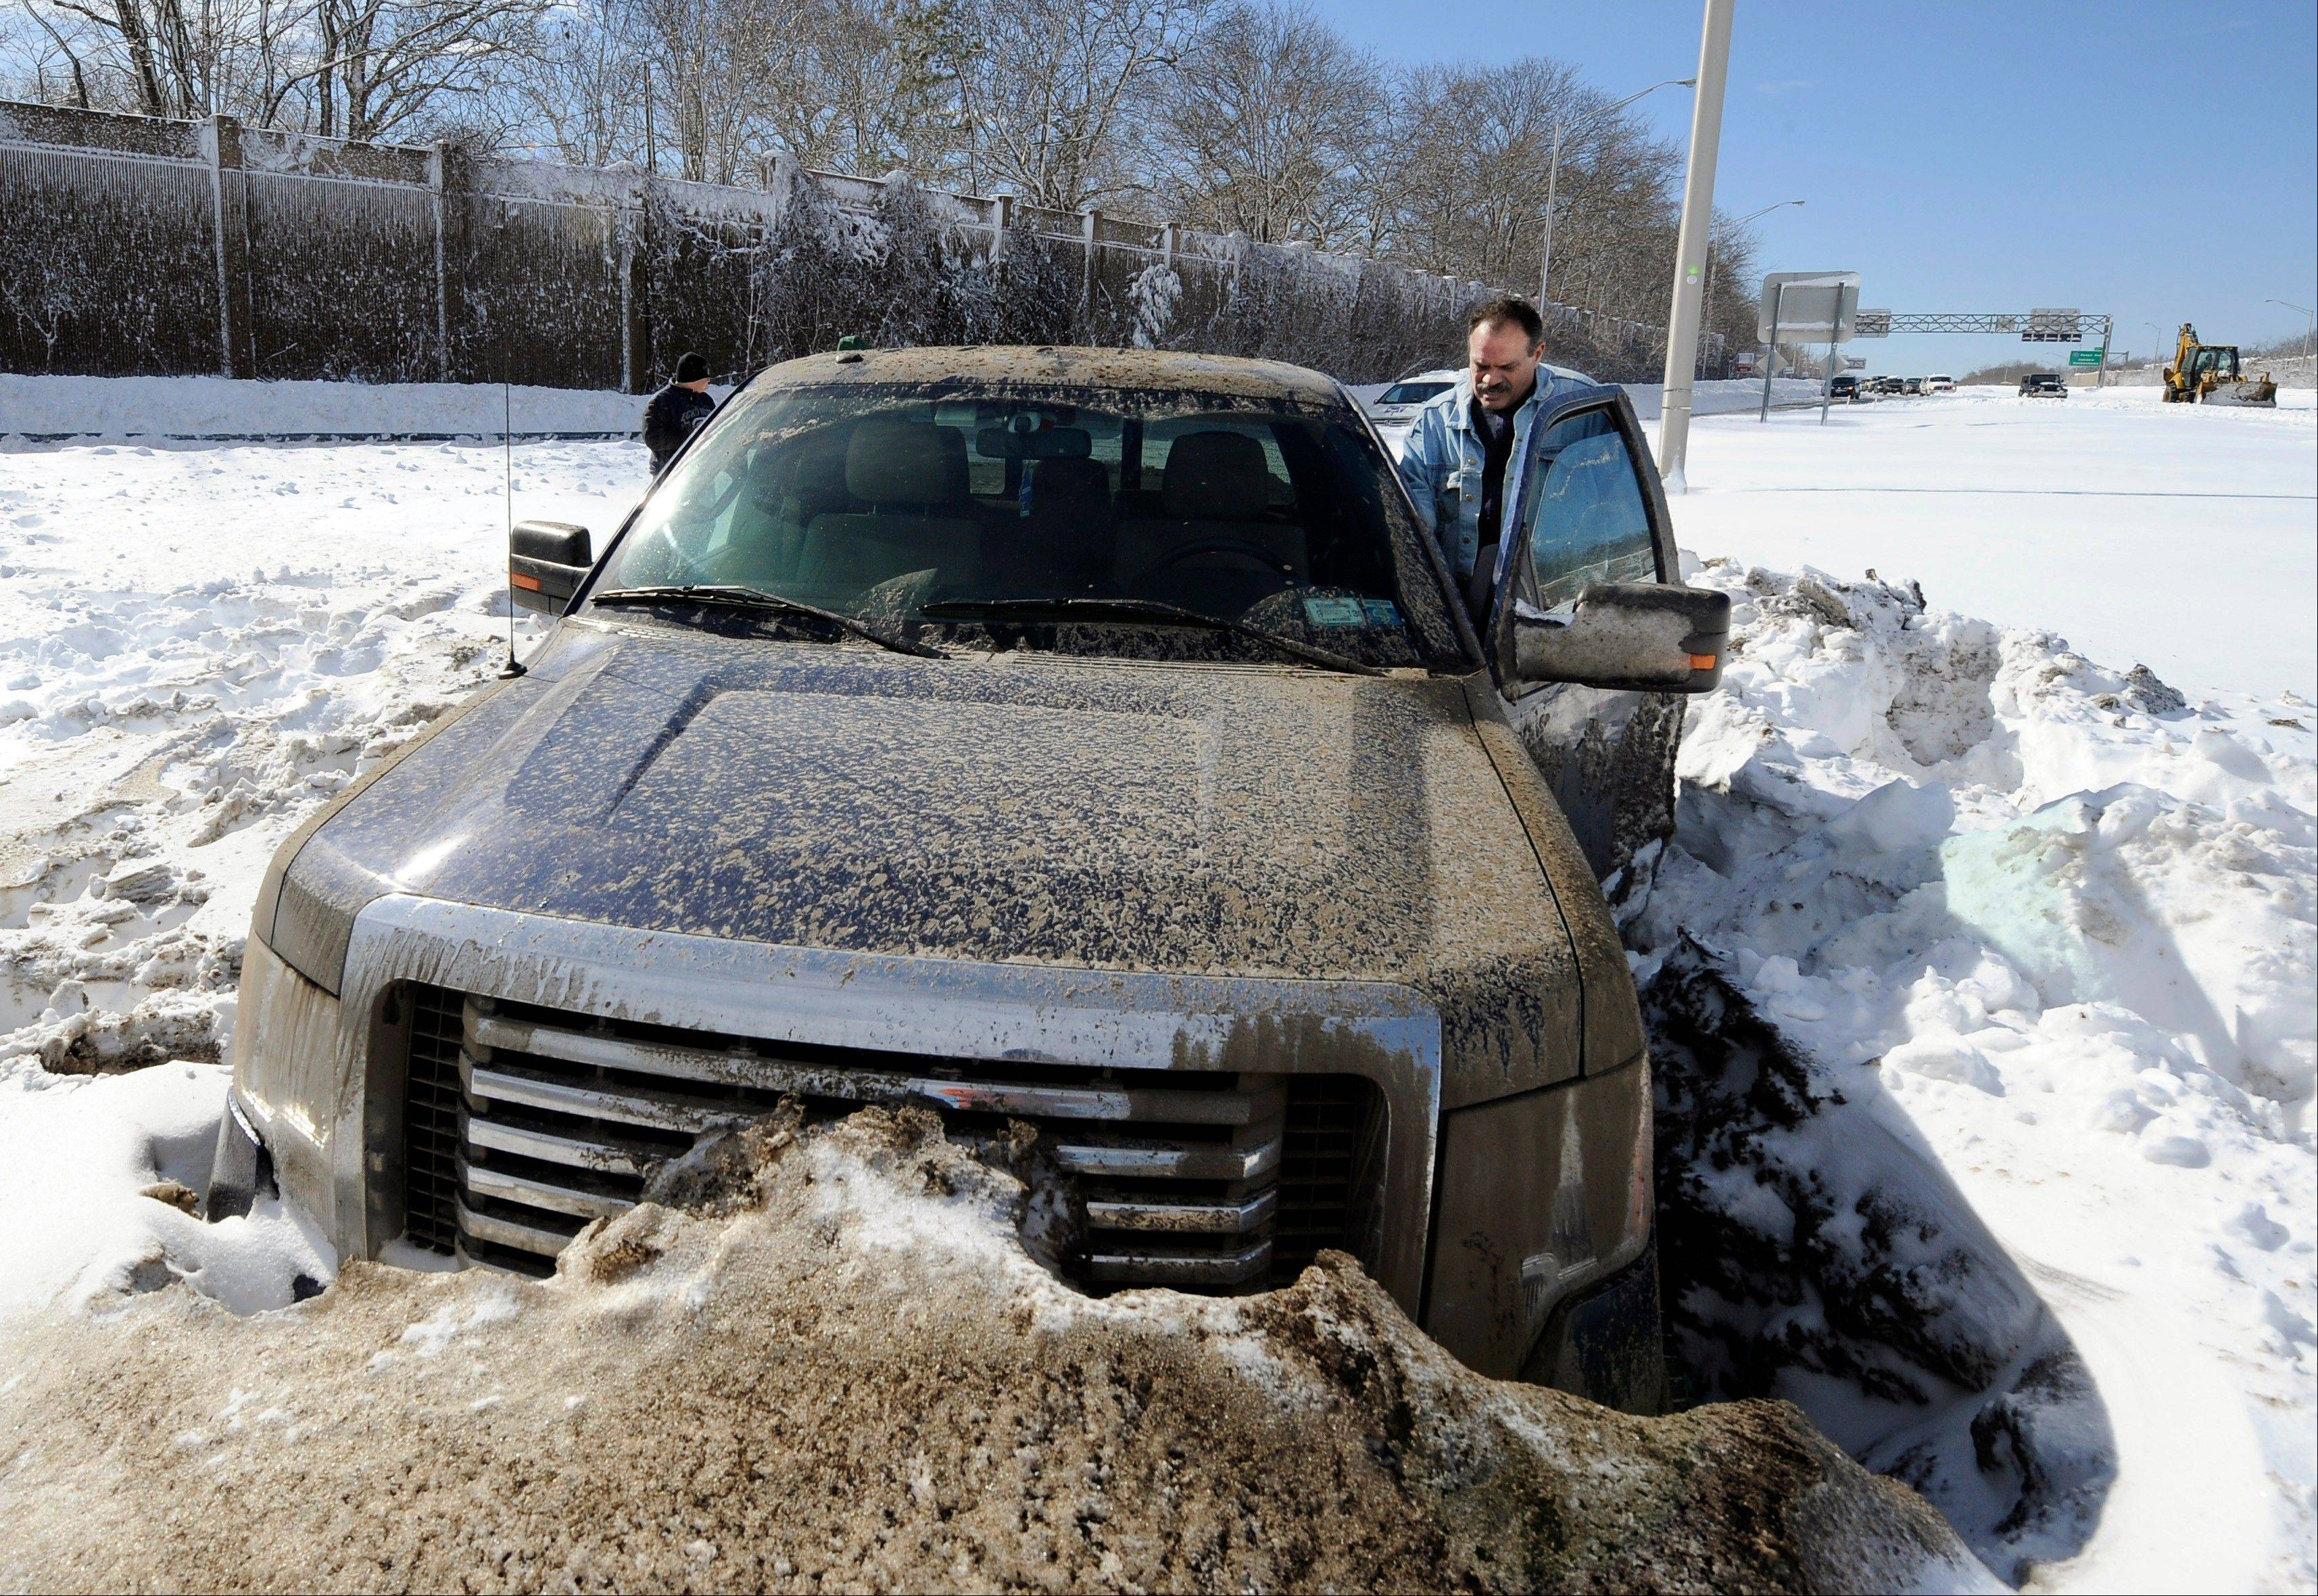 Wayne Gingo, of Medford, N.Y., gets back into his car that got stuck in the snow on the Long Island Expressway eastbound near Exit 60, Saturday, in Ronkonkoma, N.Y. Gingo was driving home from his job as a postal worker at JFK Airport and got stuck in the snow at 1:45 a.m. He spent the night in the car waiting for a tow truck.